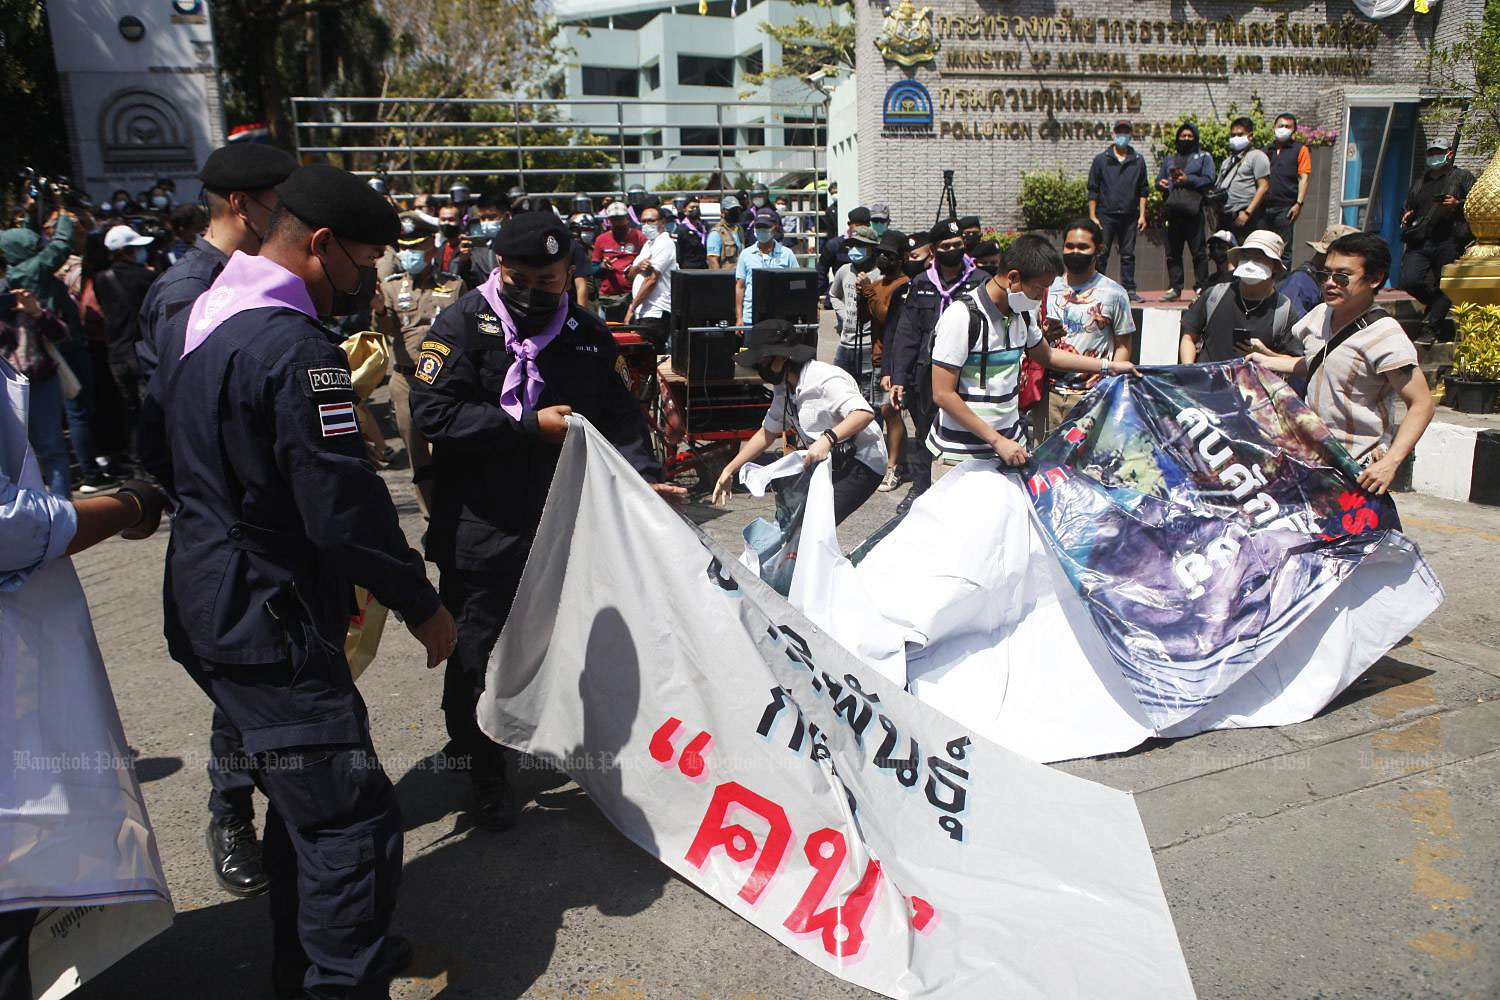 Police seize a banner from activists outside the Natural Resources and Environment Ministry on Friday during a protest against the eviction of ethnic Karen villagers. (Photo by Nutthawat Wicheanbut)